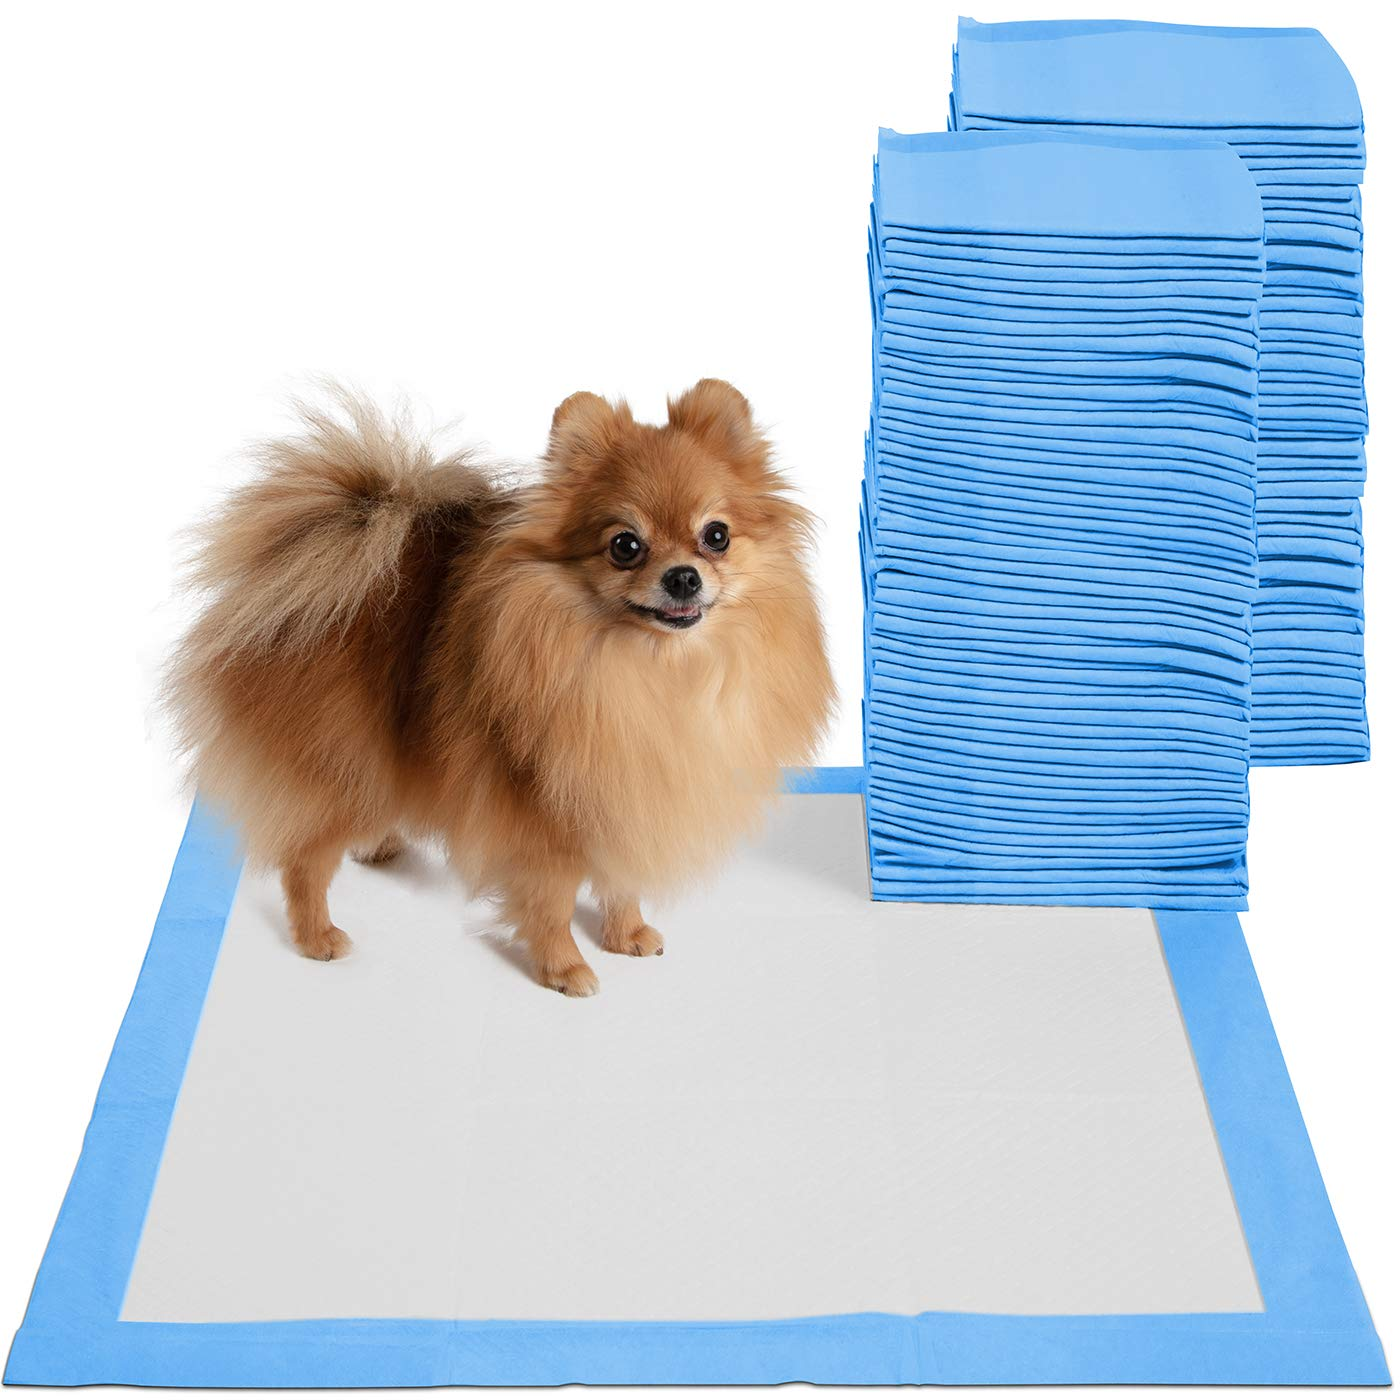 20 x 20 Pet Training Potty Pee Pads for Dogs and Cats – 30, 100, and 150 Count (100 Count) by Paws & Pals